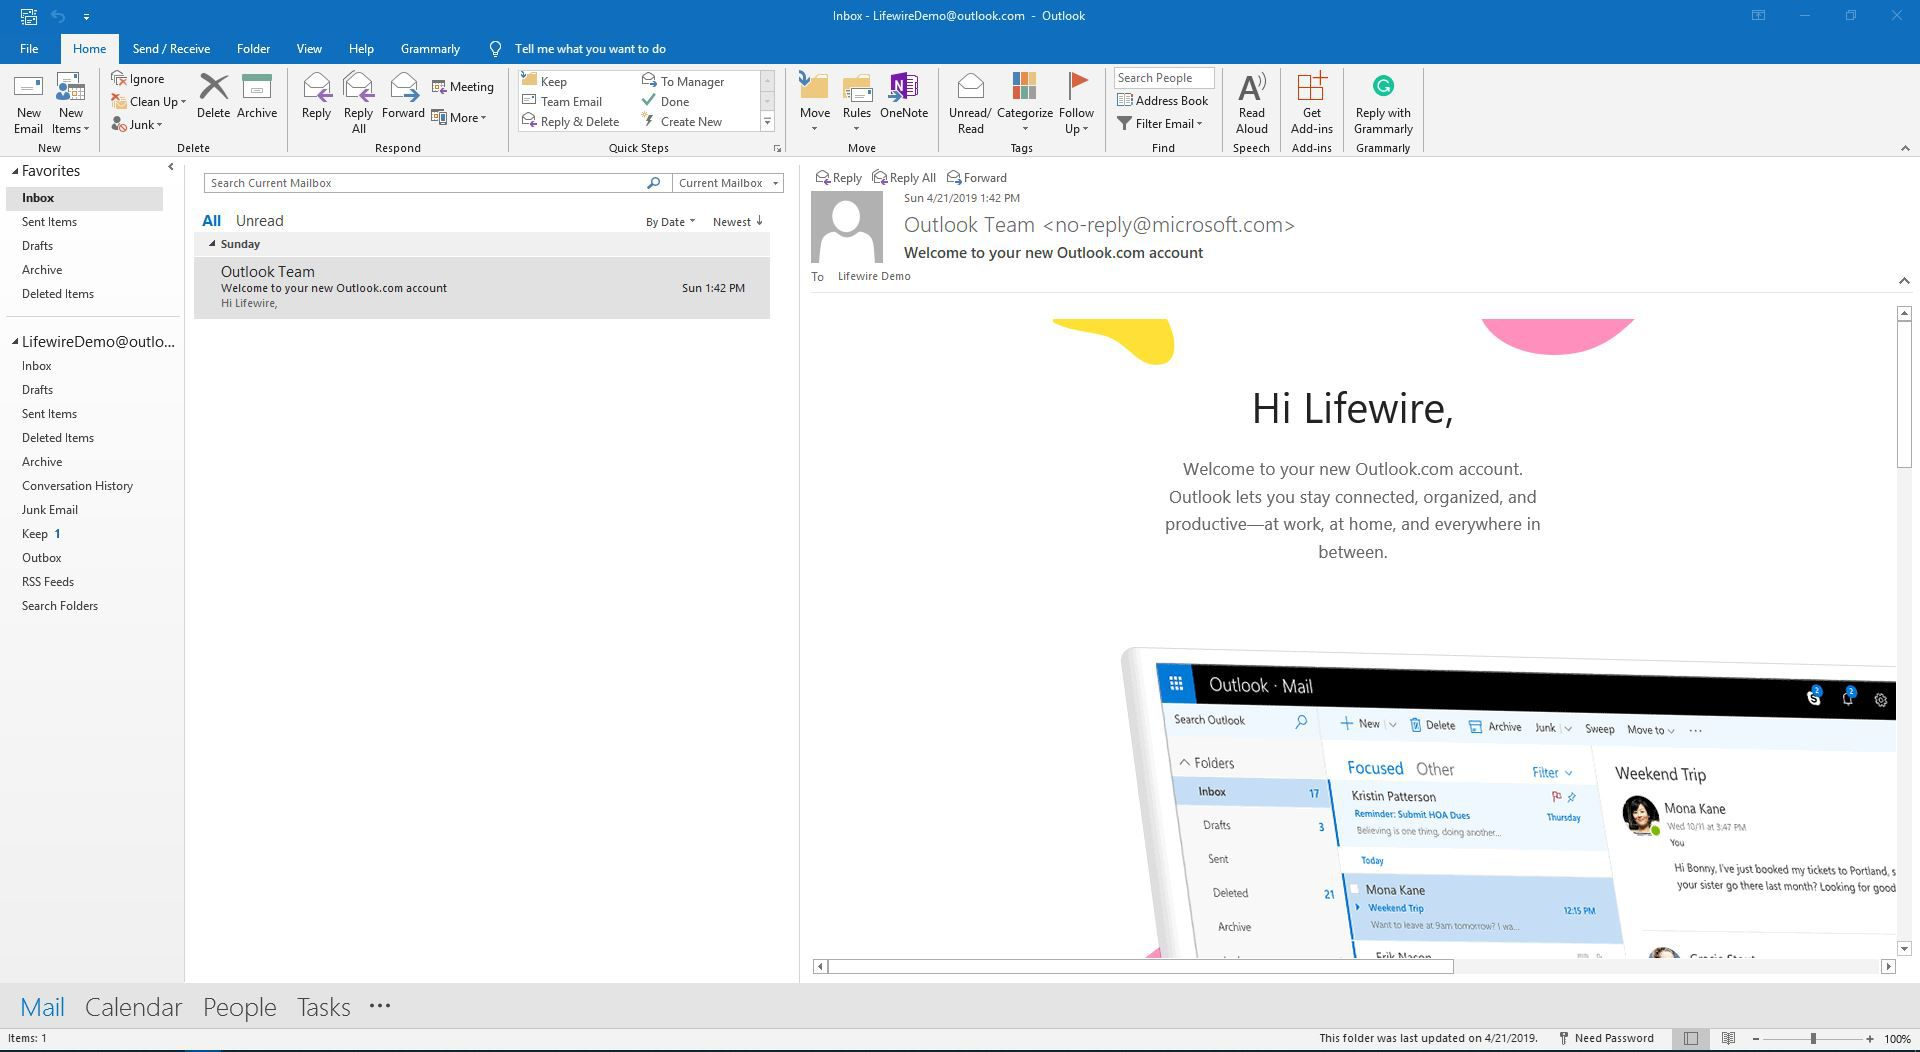 How to Use an Image for an Outlook Signature